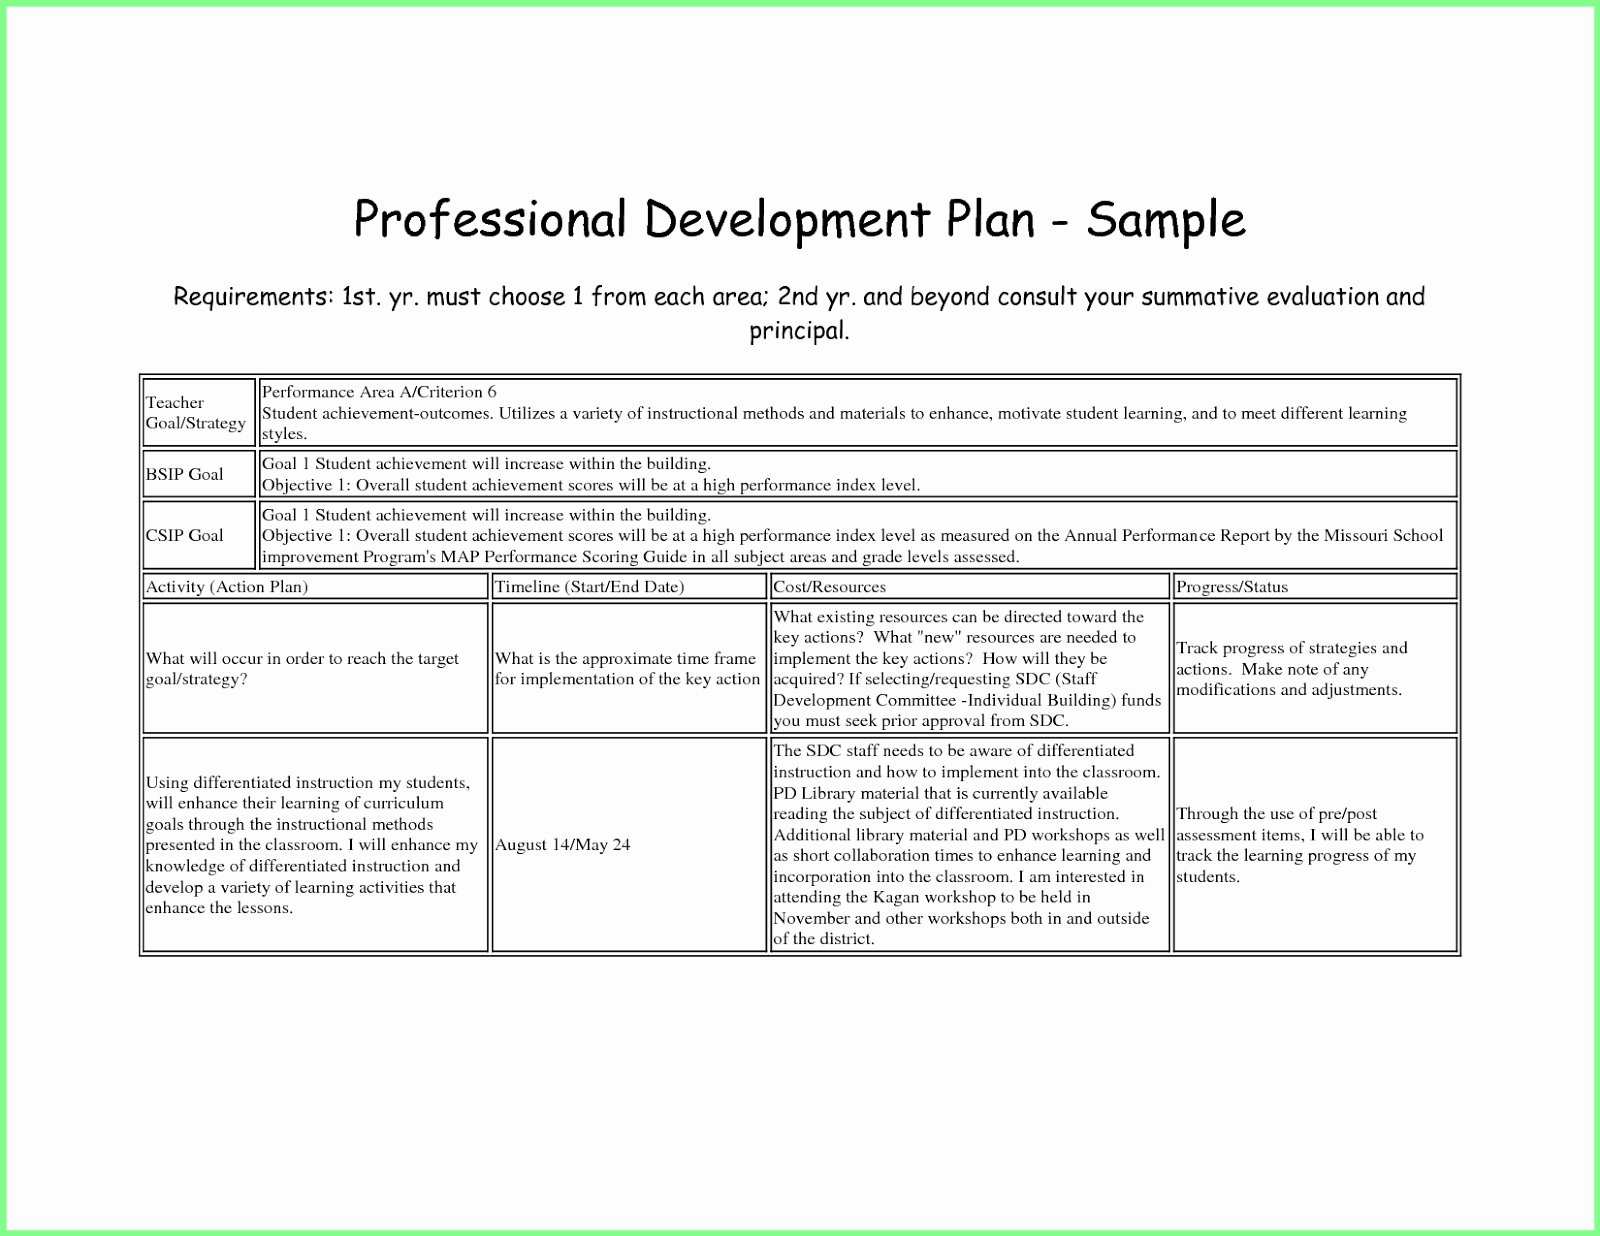 Individual Professional Development Plan Samples Awesome Professional Growth Plan Template for Teachers Cover